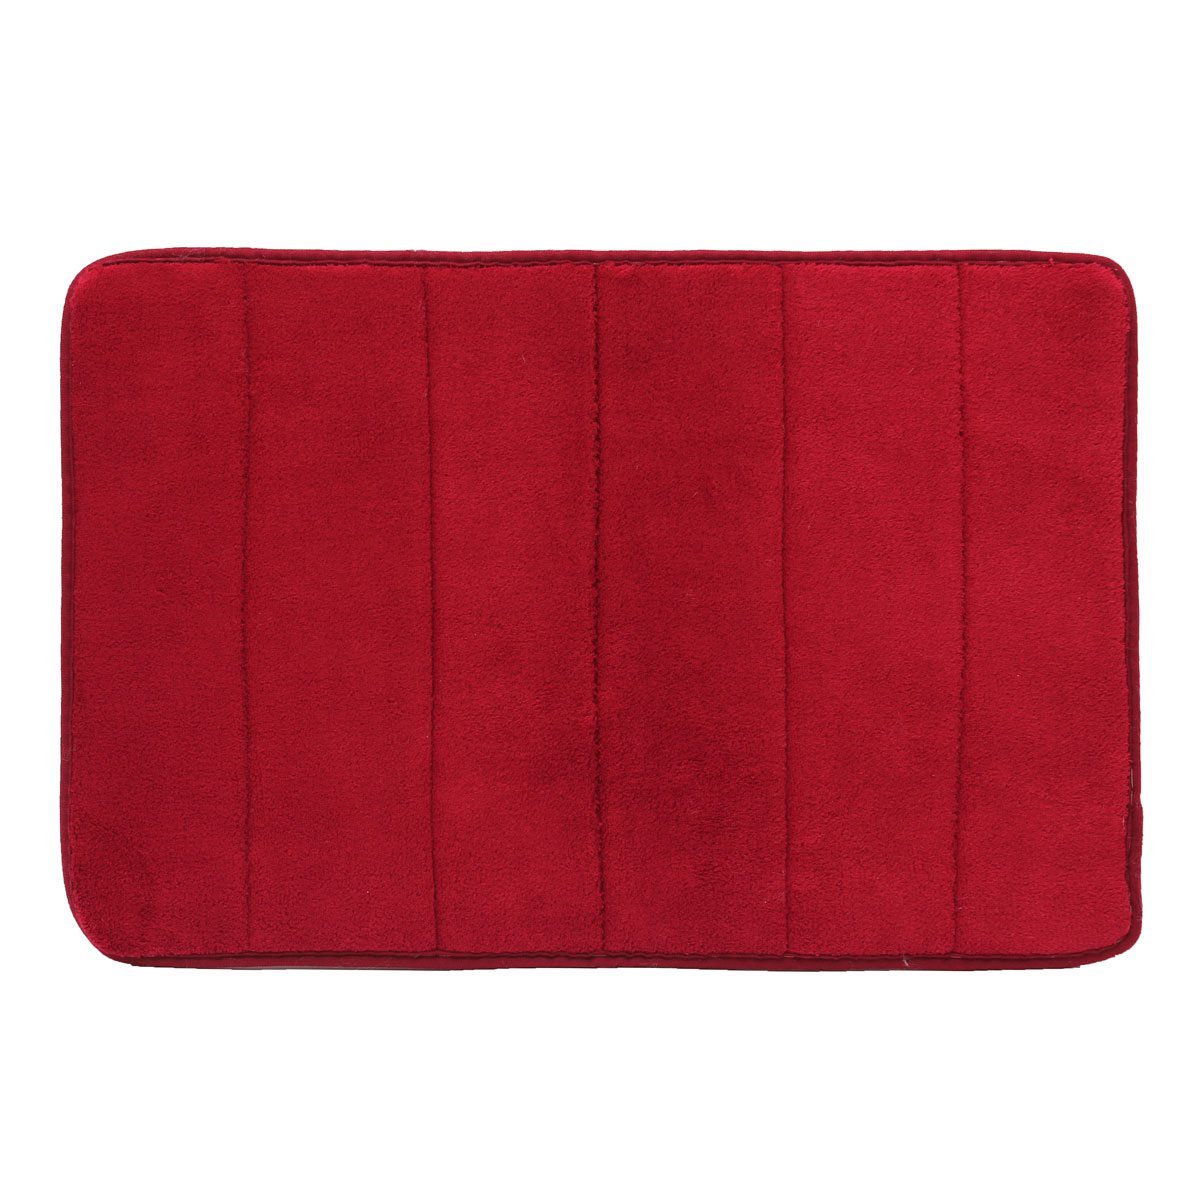 memory foam bath mat absorbent slip resistant pad bathroom bath mat